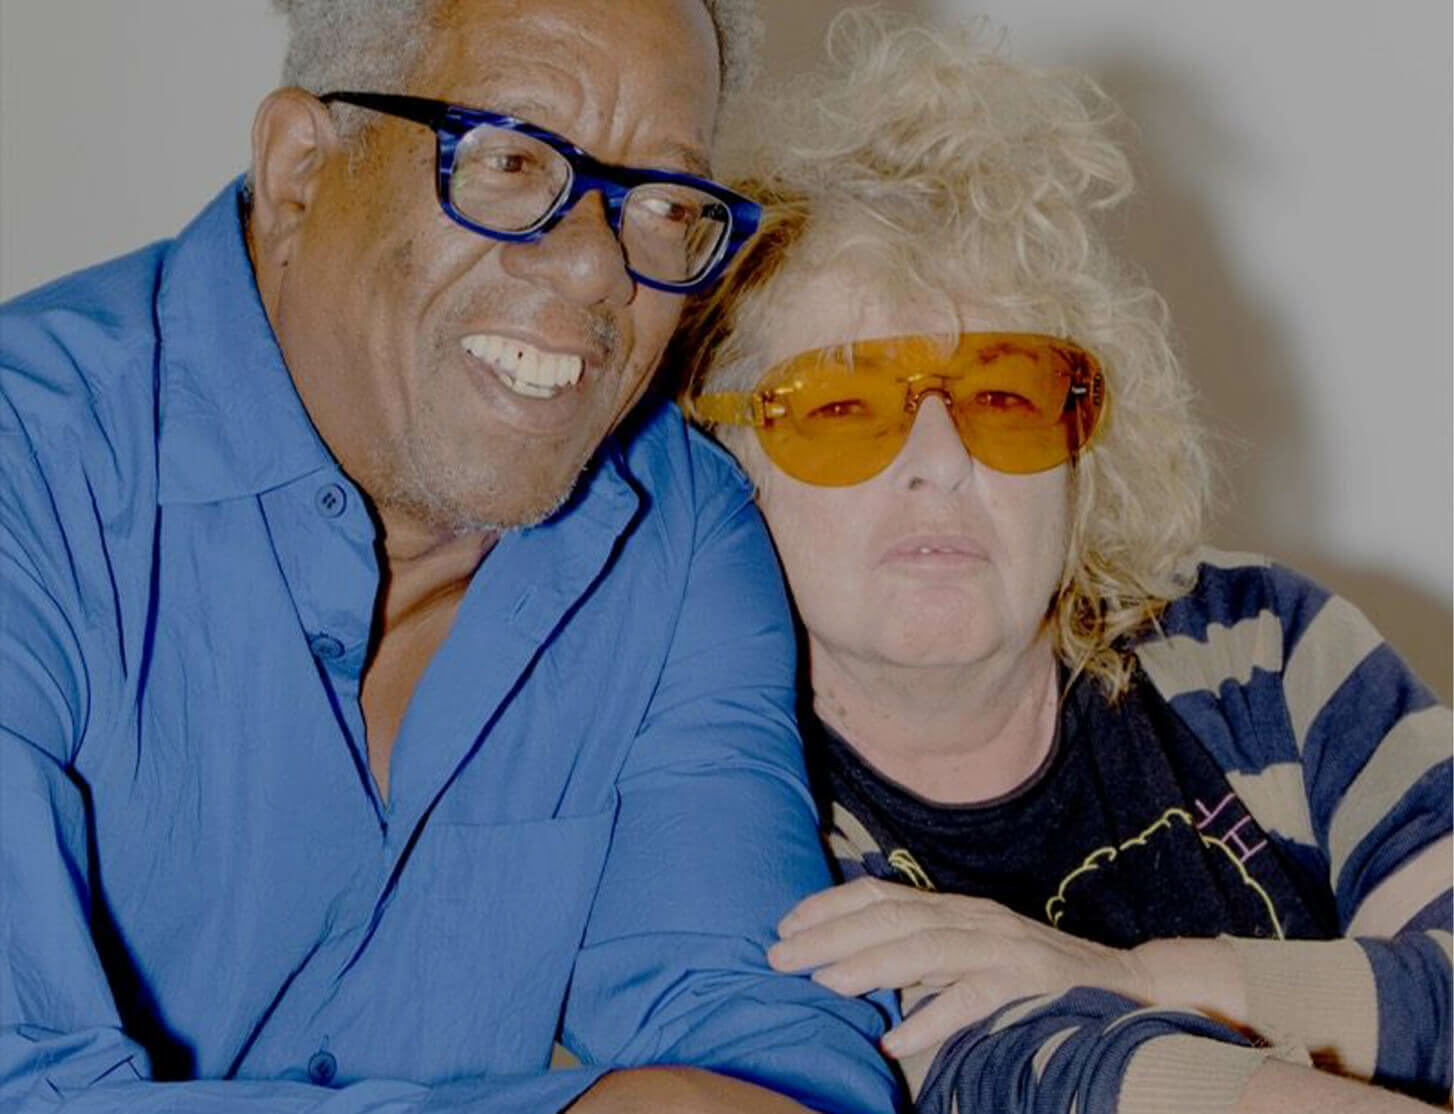 How Two offbeat artists made New York their own - Joyce Pensato and Stanley Whitney in Interview Magazine